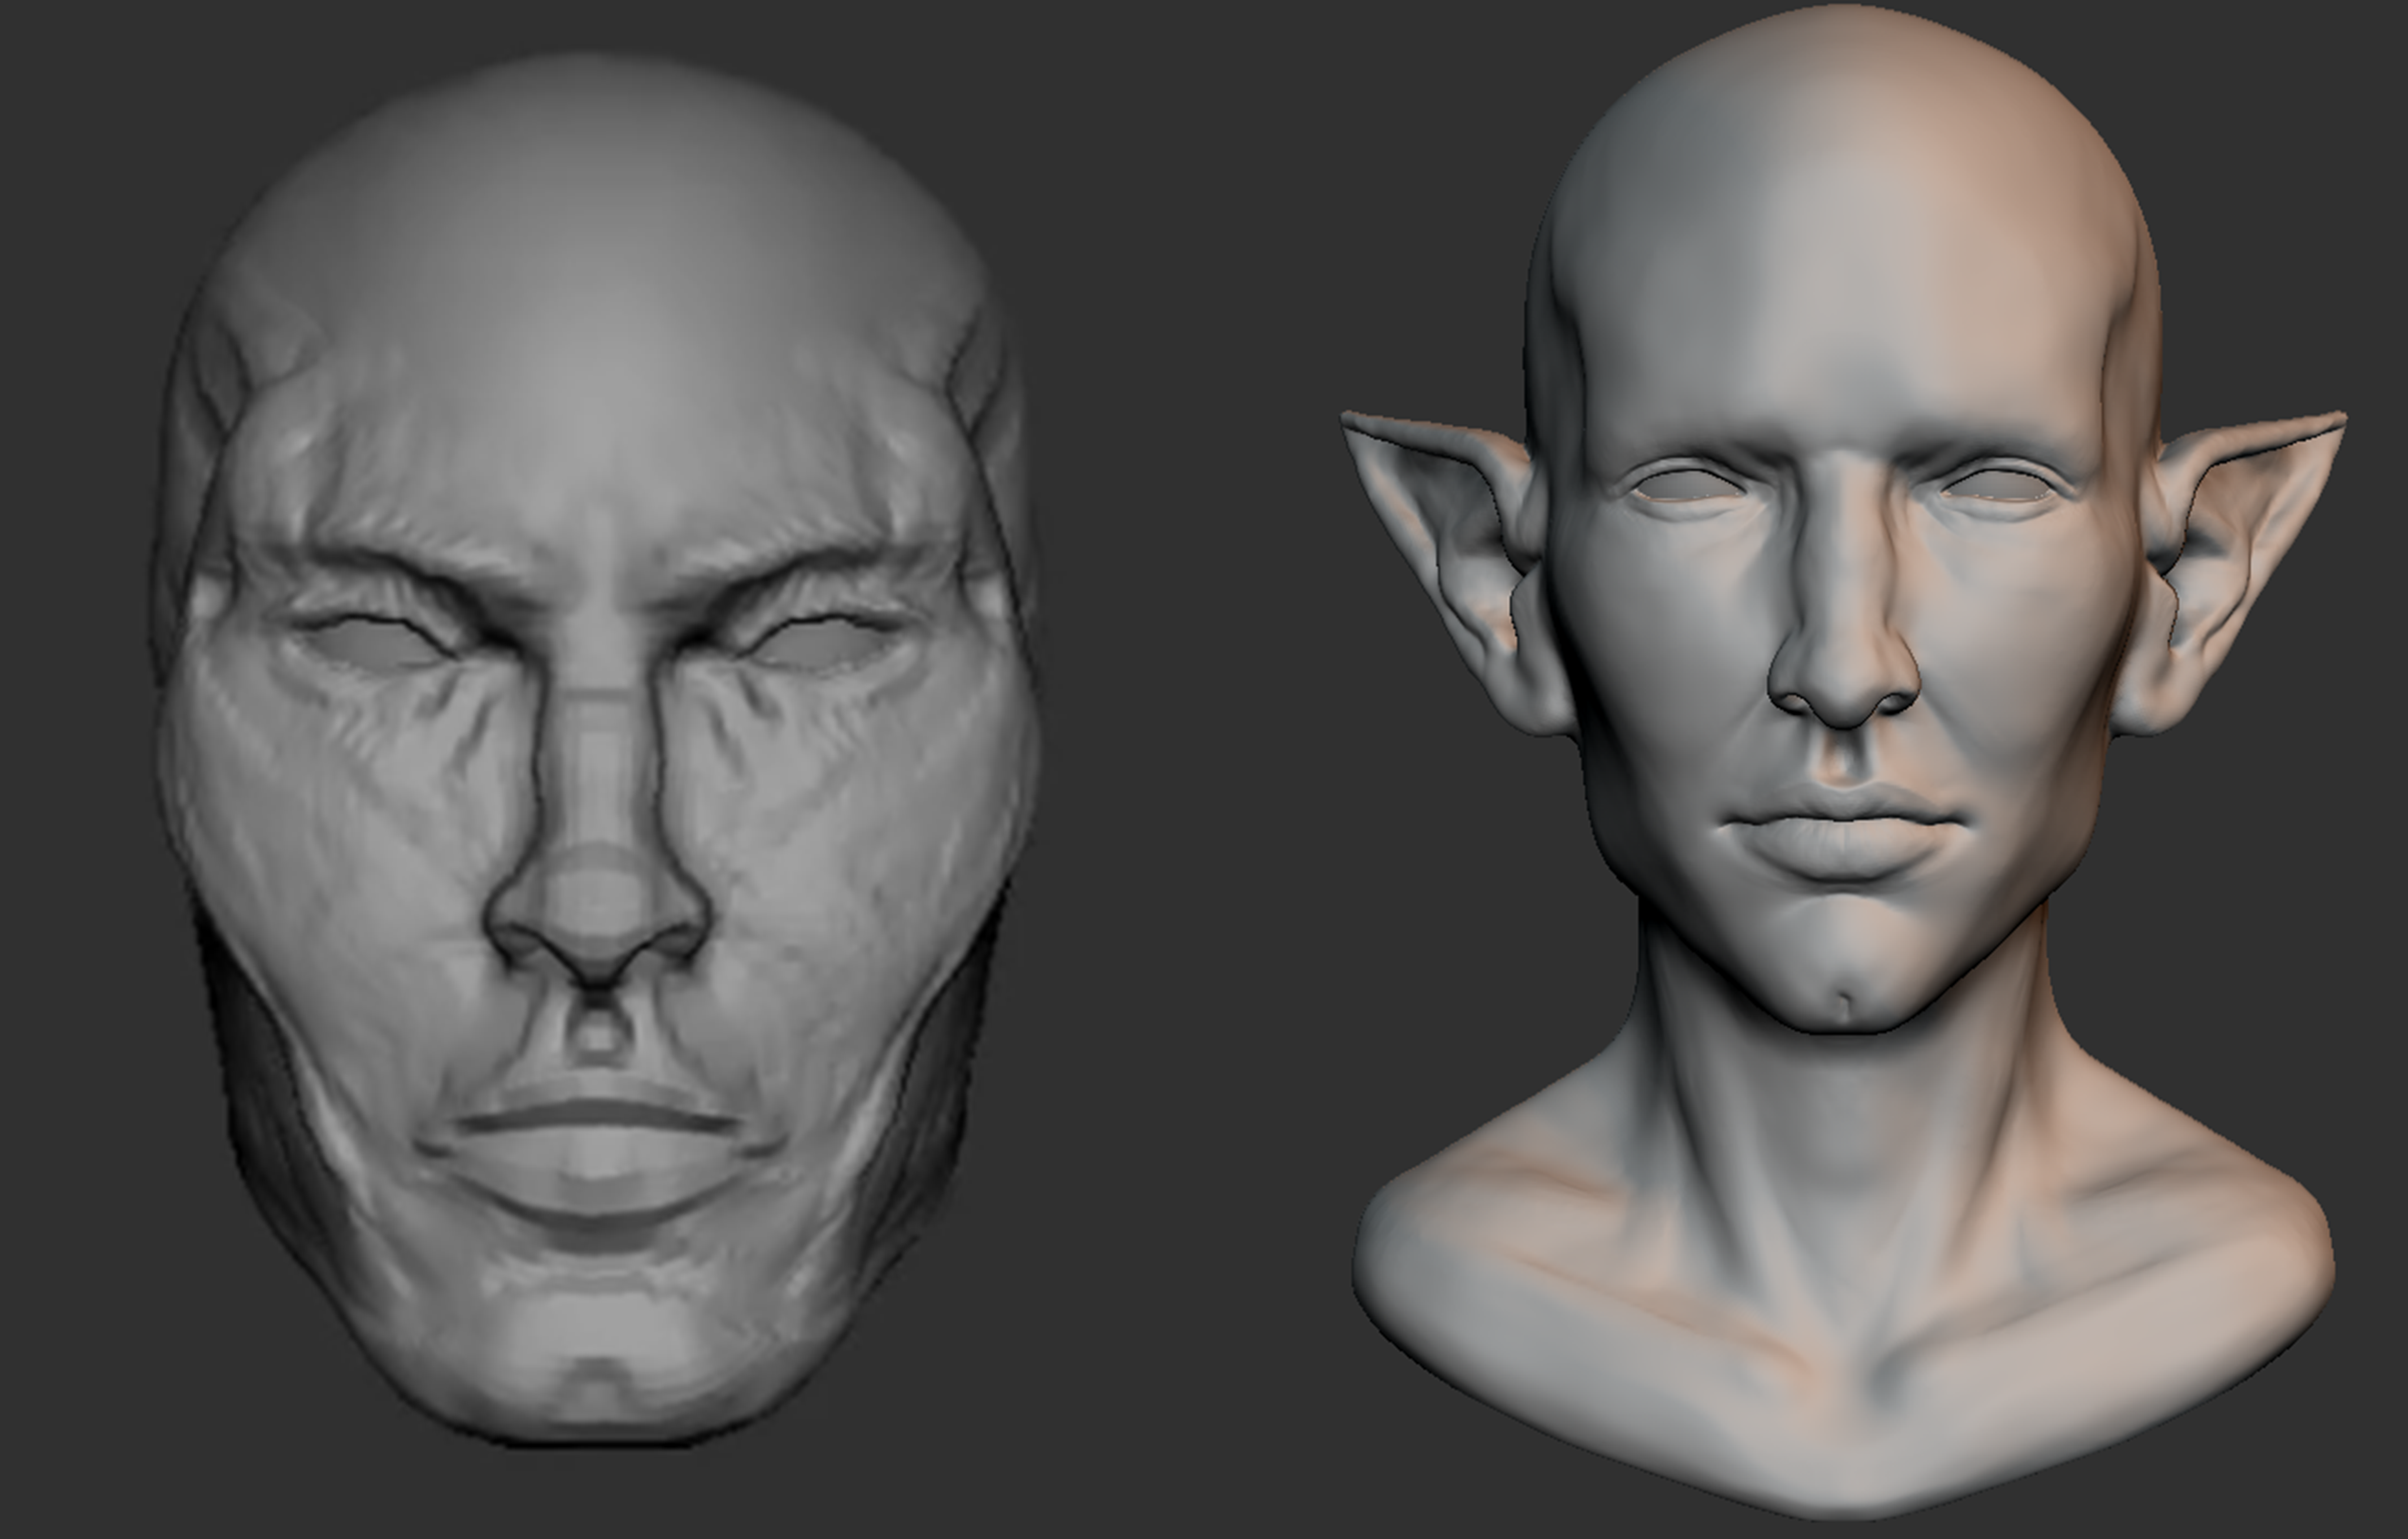 Solas sculpt by author, Character from Bioware's Dragon Age